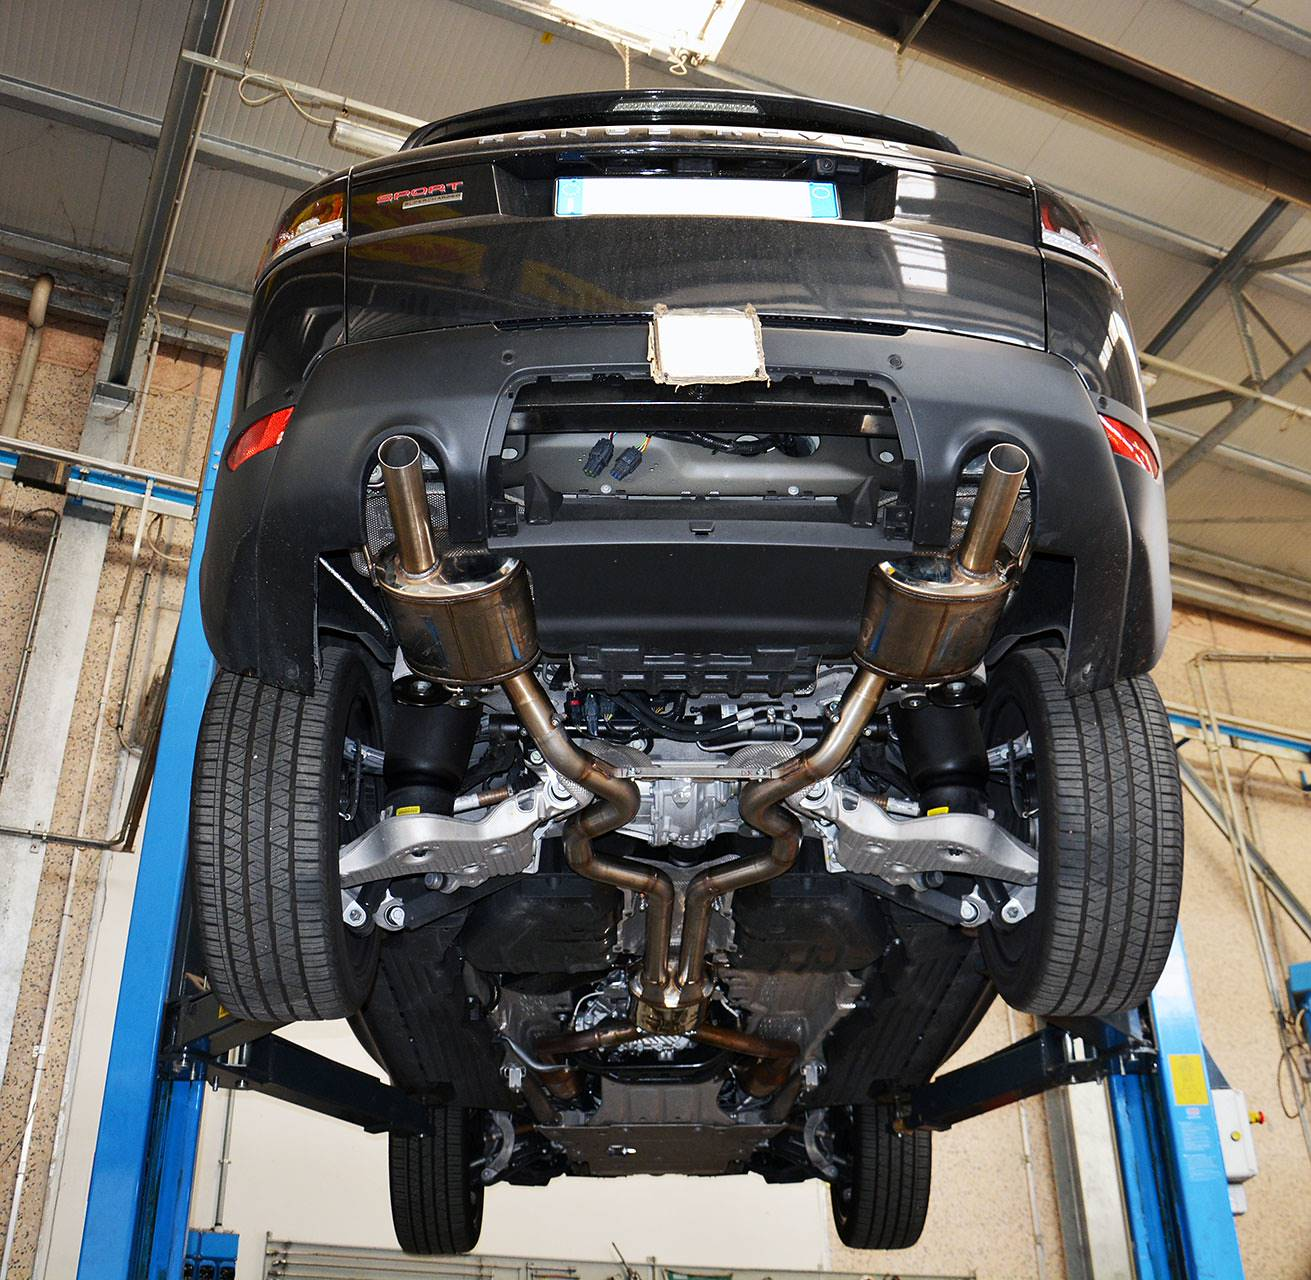 Range Rover Sport mk2 L494 5.0 Supercharged - Sport exhaust development by Supersprint -  Rear mufflers with temporary exit pipes and centre silencer testing